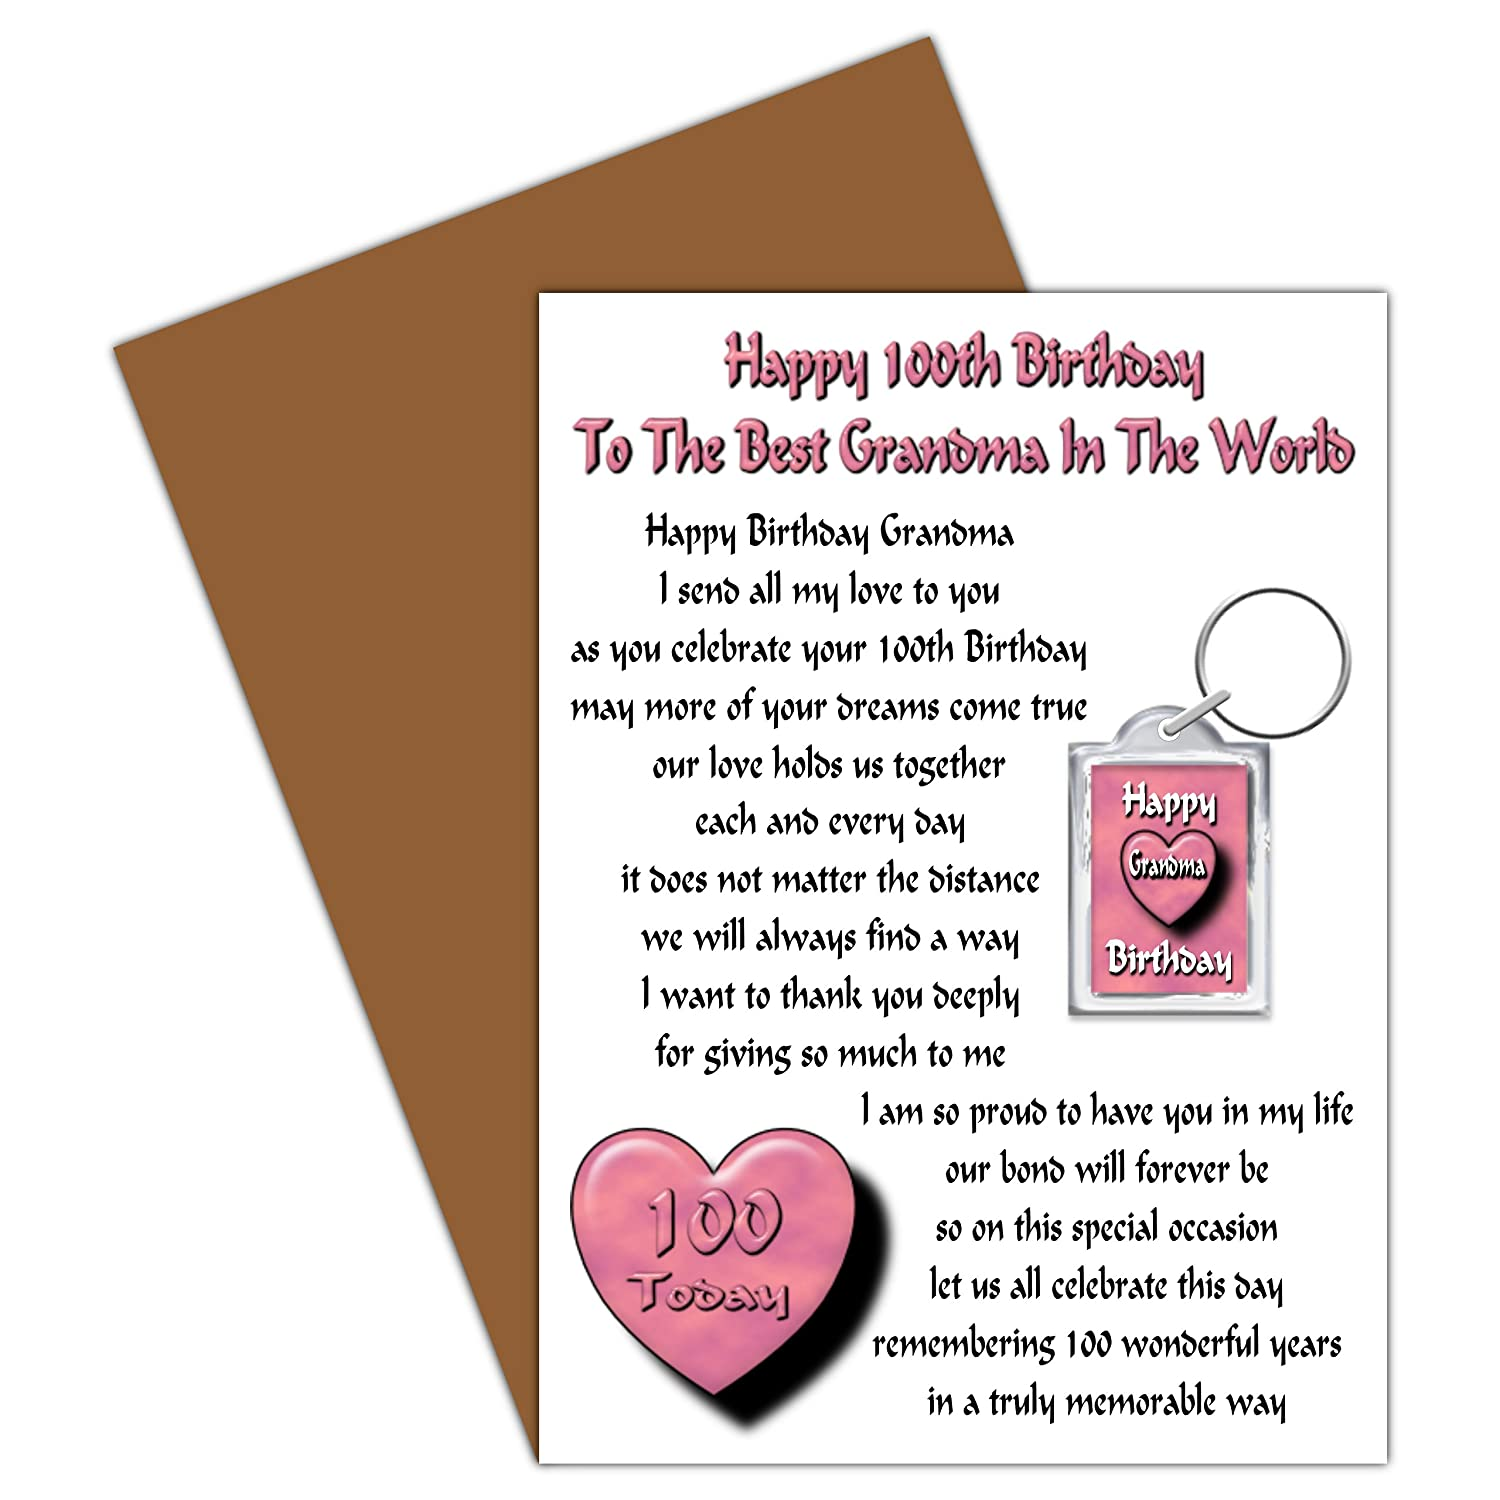 Grandma 100th happy birthday card with removable keyring gift grandma 100th happy birthday card with removable keyring gift verse from an adult 100 today amazon office products bookmarktalkfo